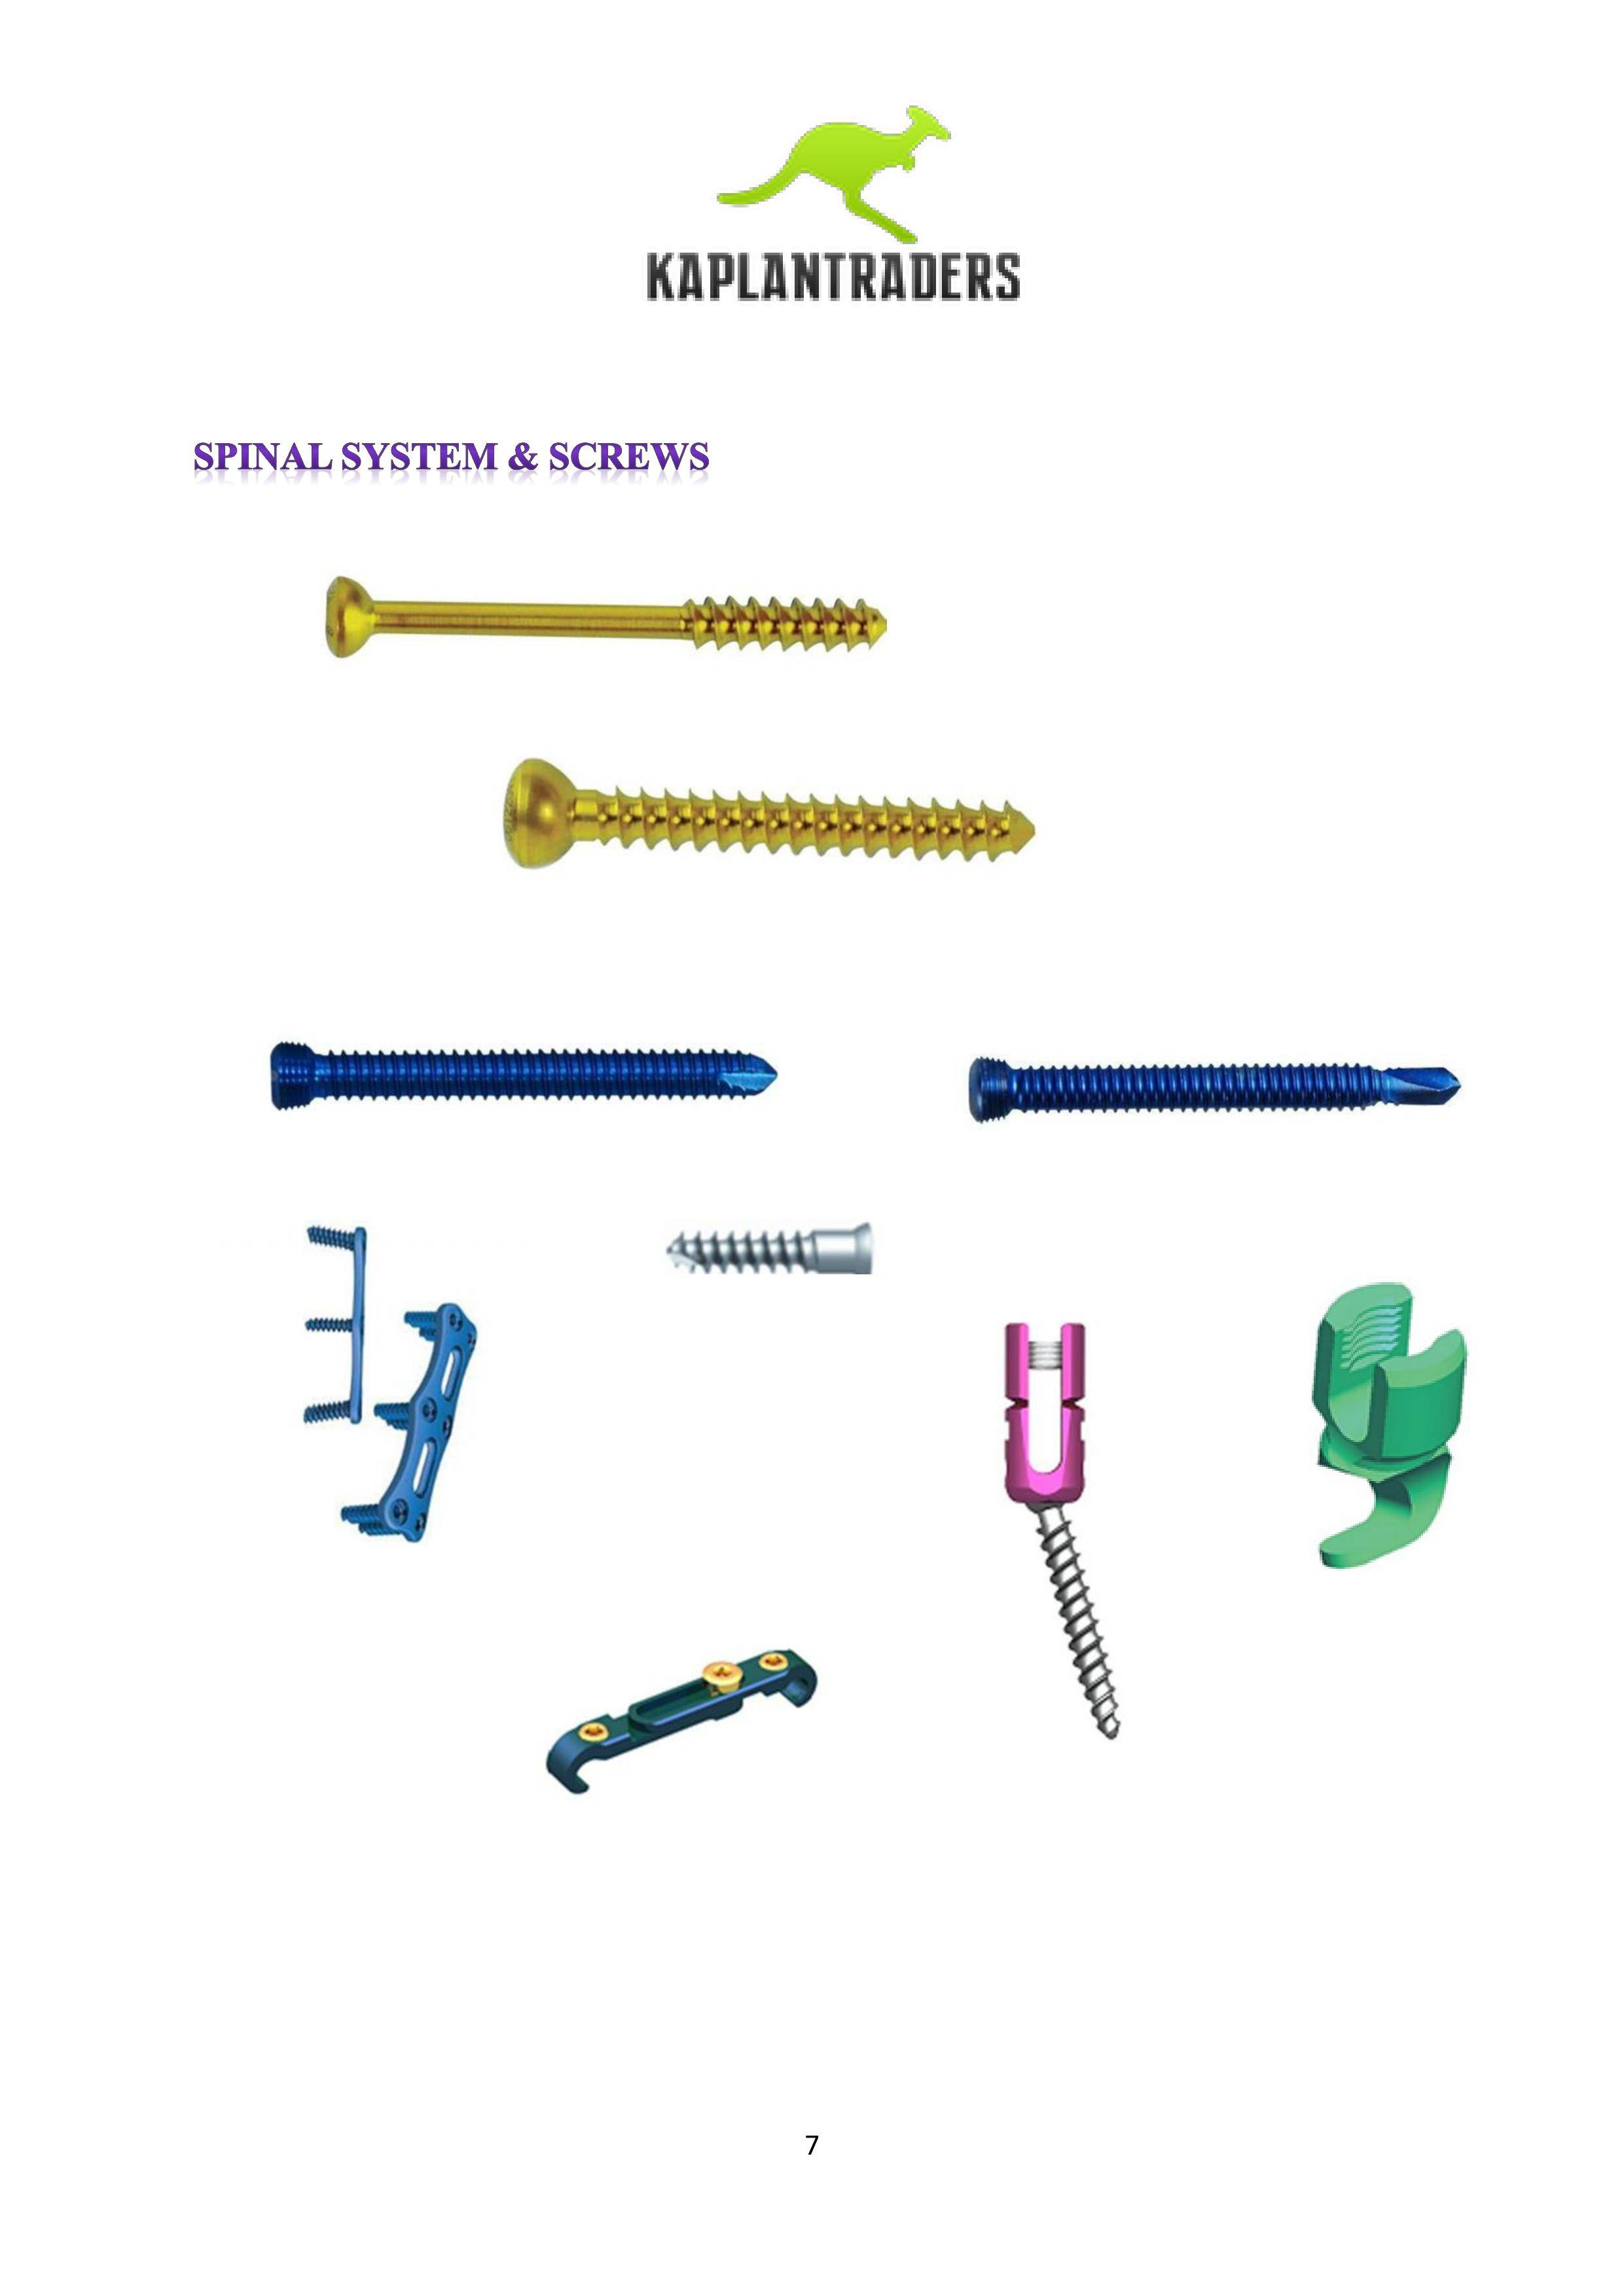 SPINE SYSTEMS AND SCREWS